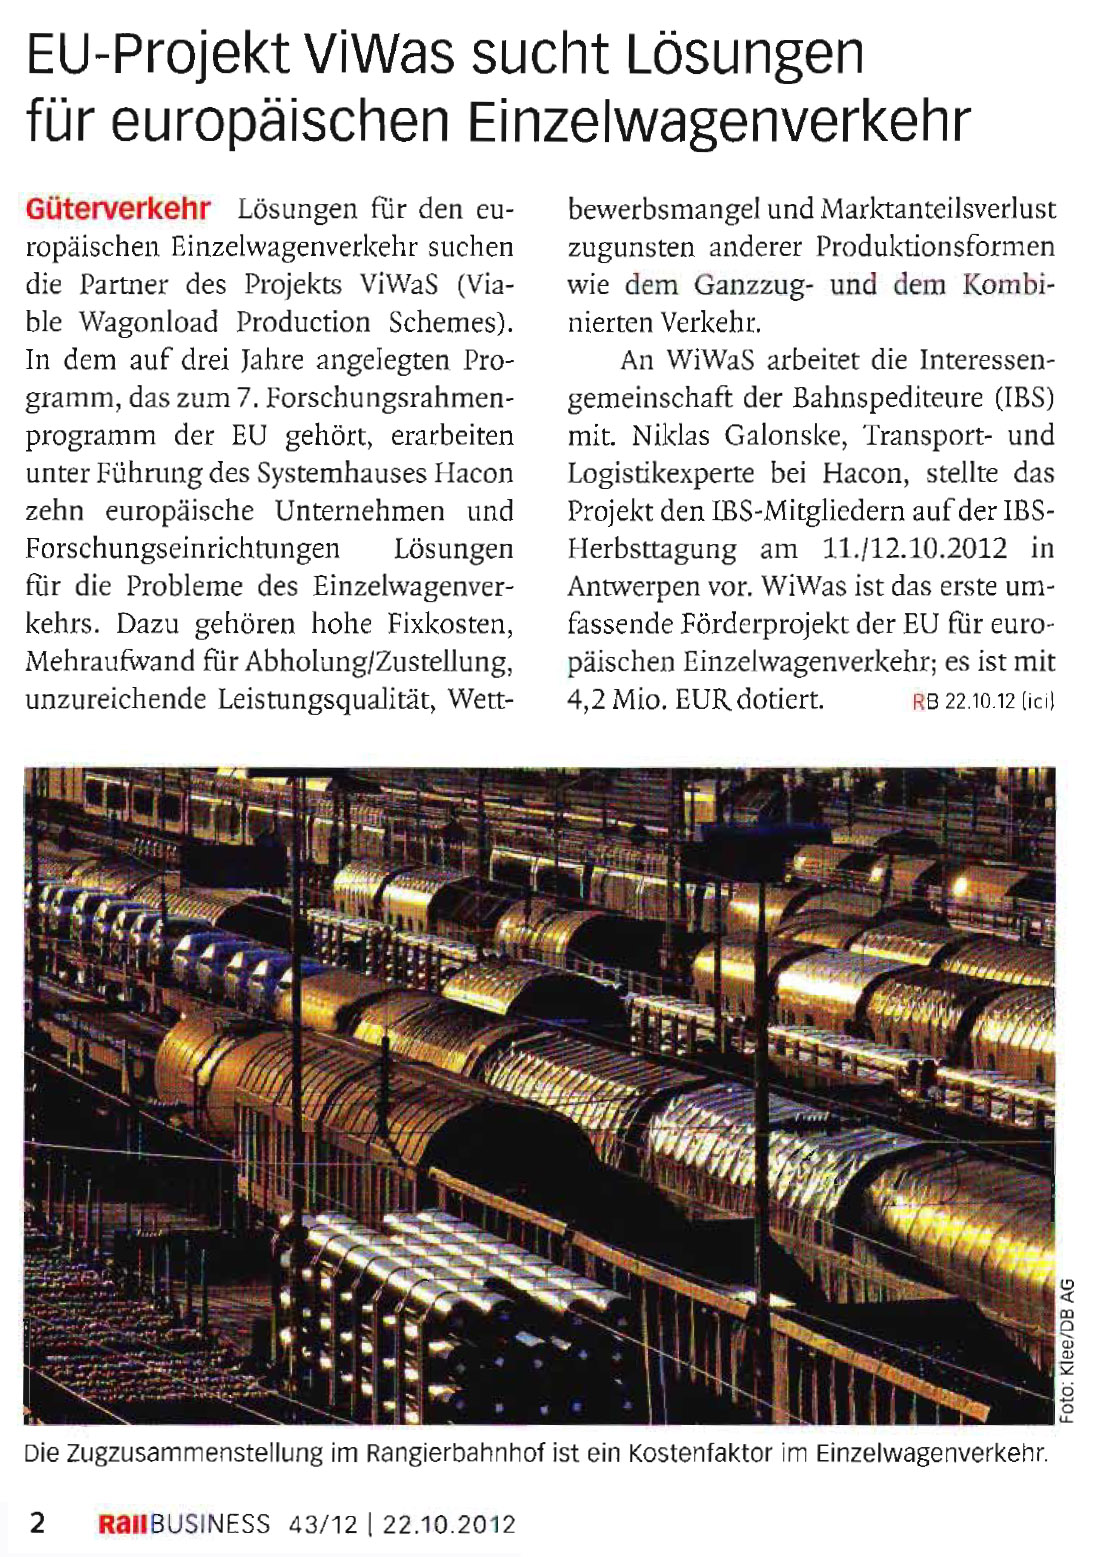 Source: Rail Business, Issue 43/2012, page 2